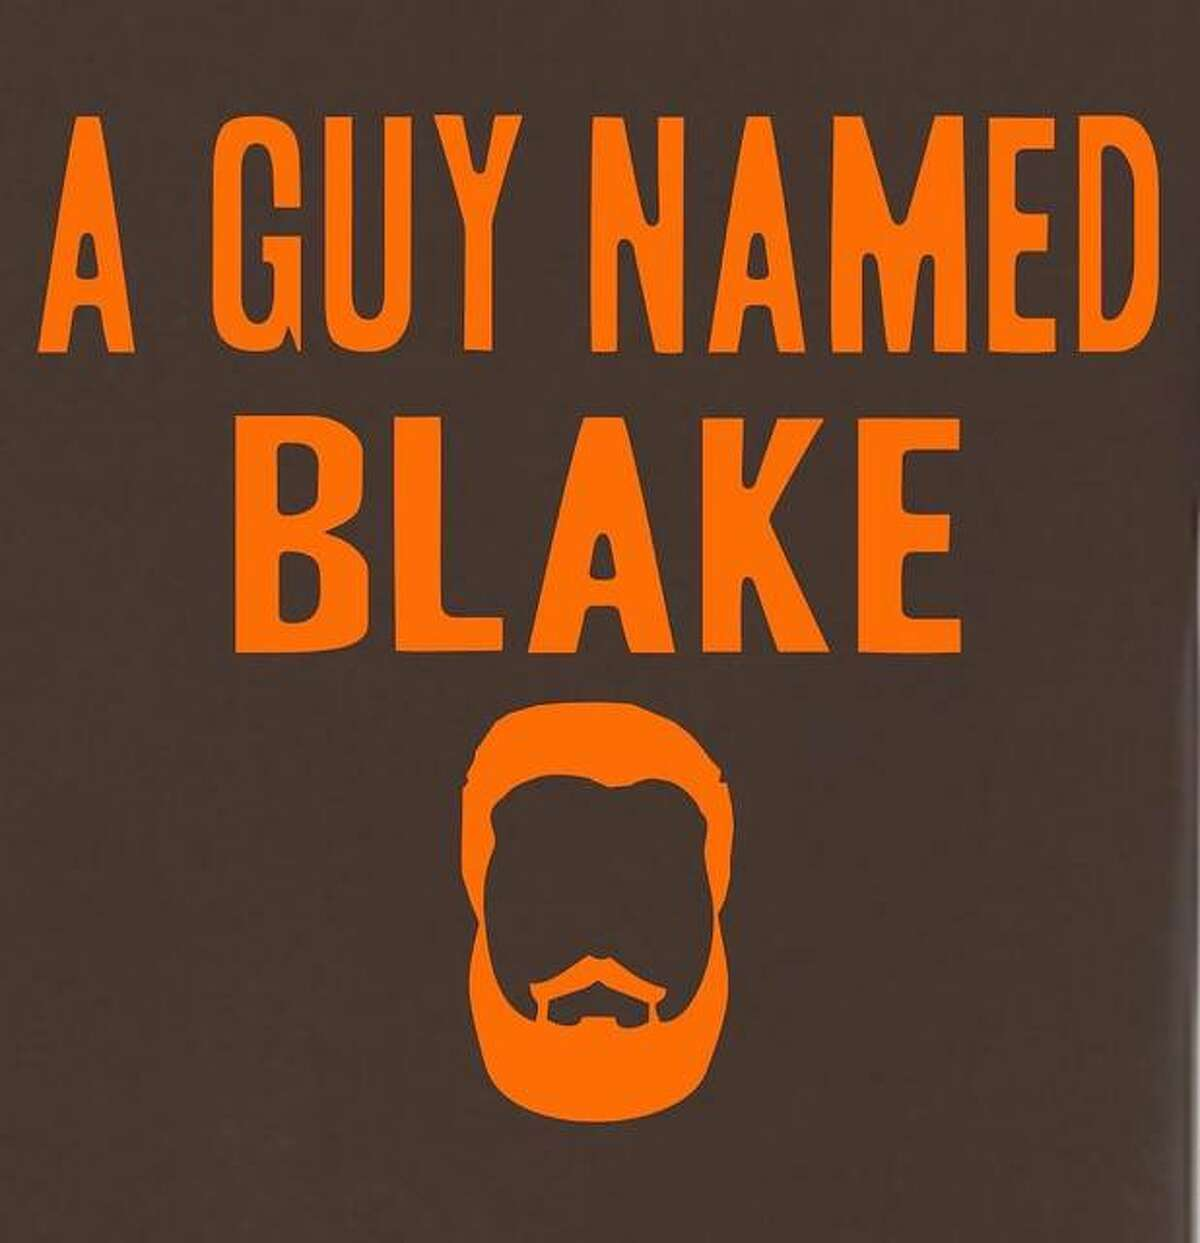 Friends and fans are invited to order a T-shirt with this logo to commemorate Blake Hance's NFL debut. Visit the website at https://store.outbreakdesigns.com/. Orders will be ready Friday for those who order by 3 p.m. today. Otherwise, the online store will remain open through next Tuesday.